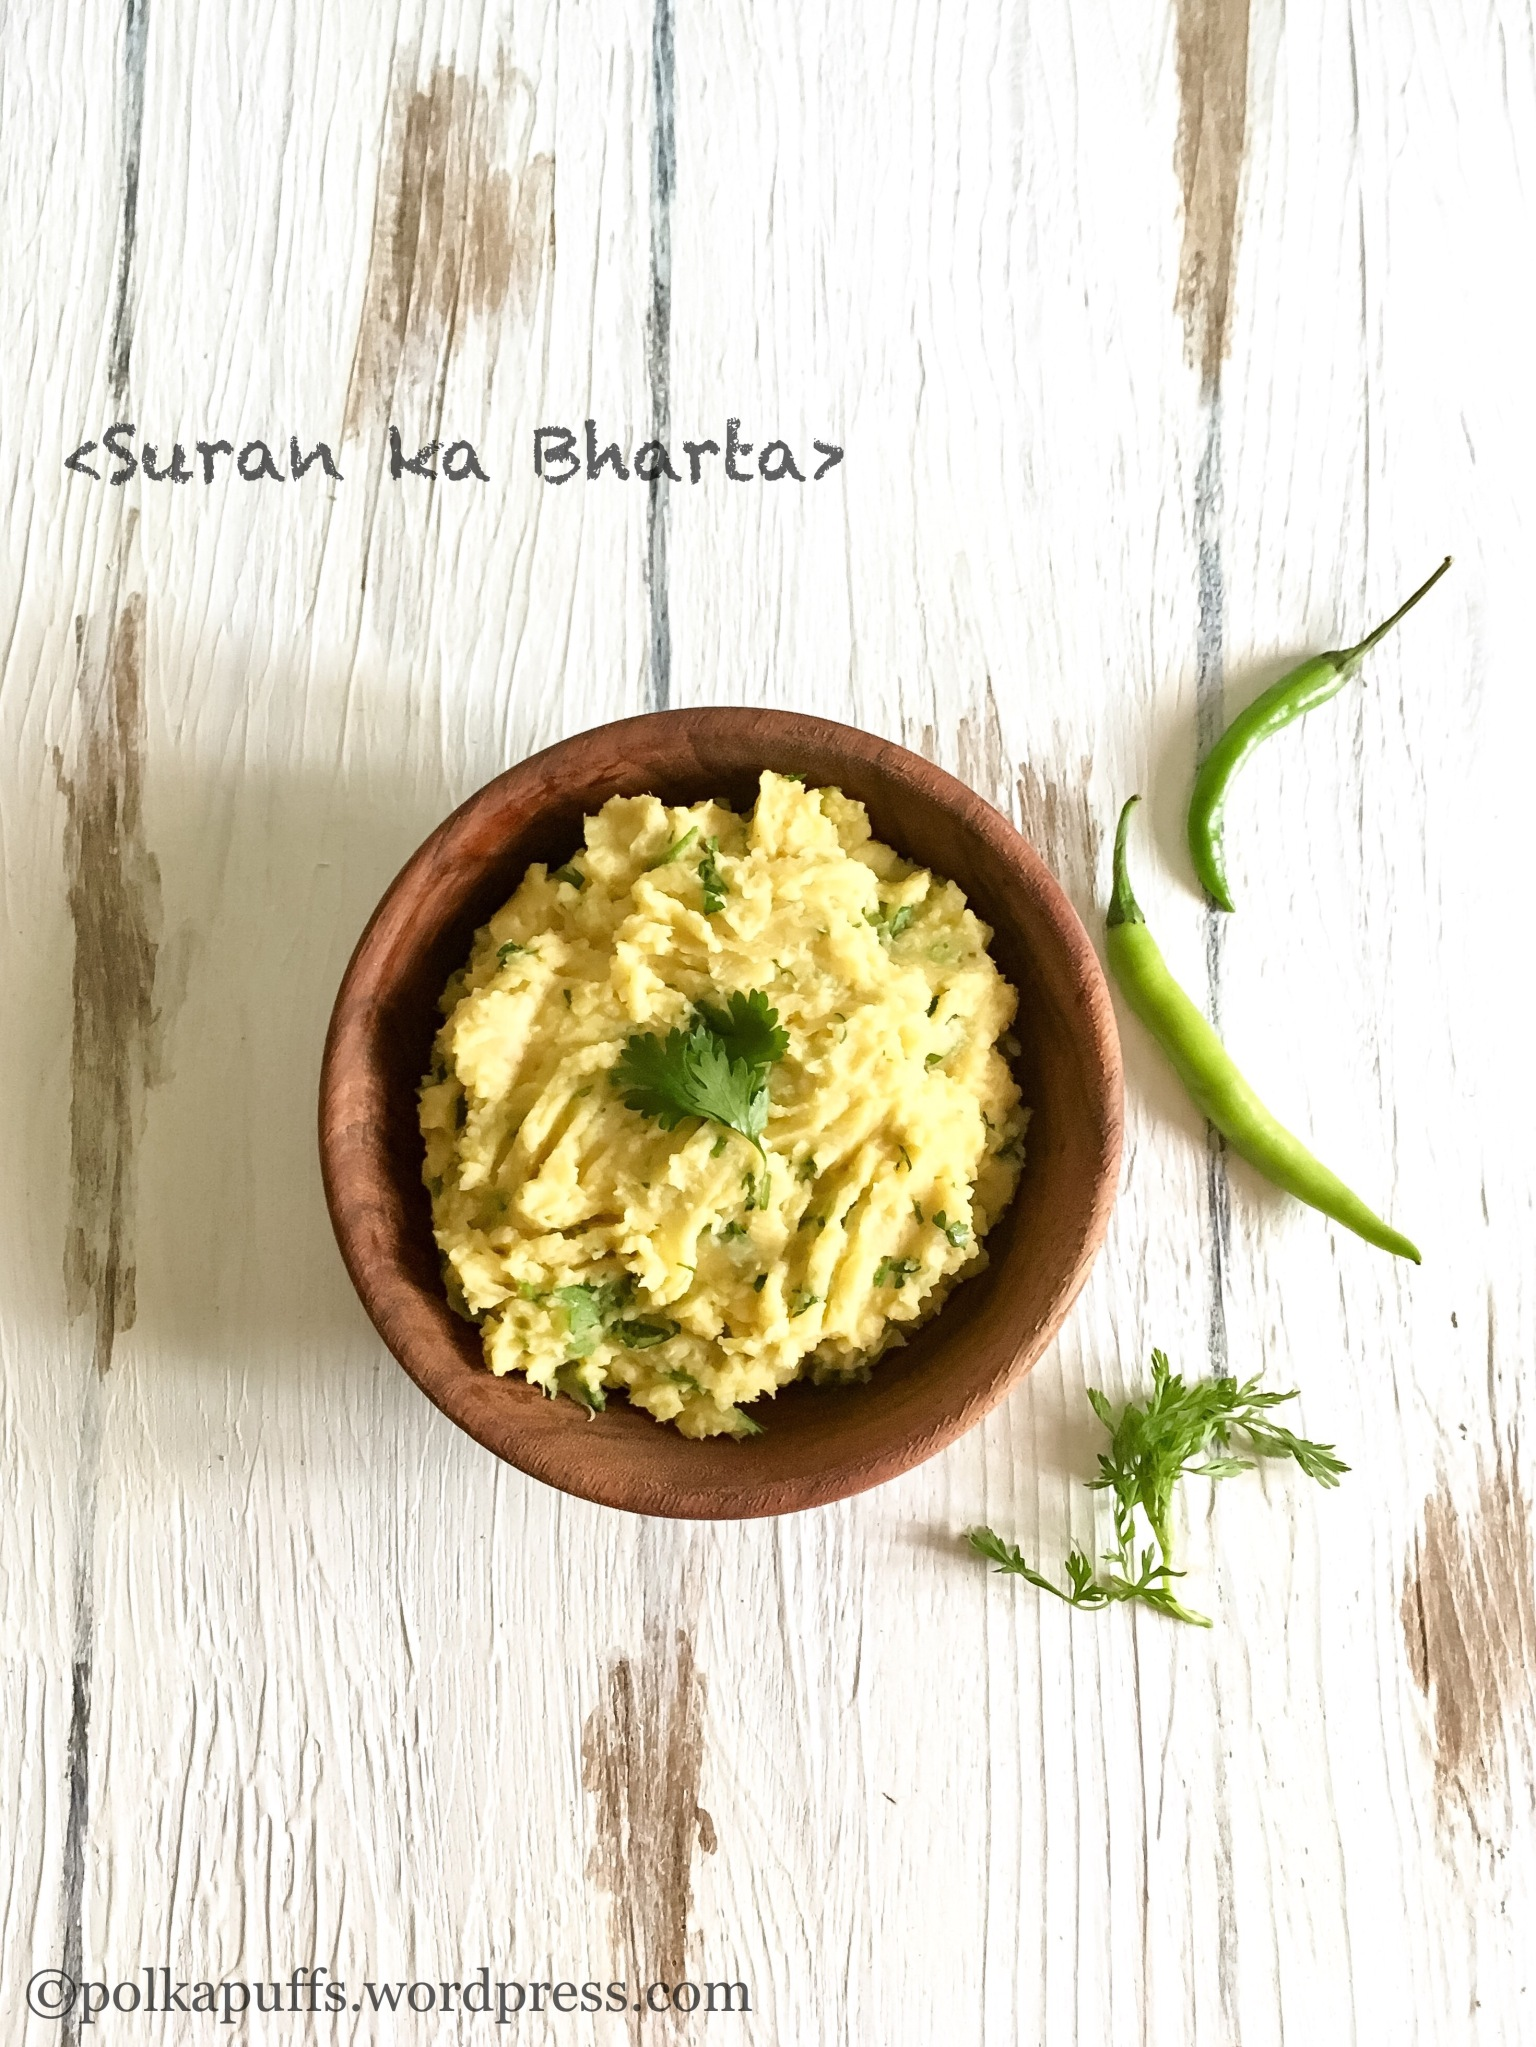 Suran Ka chokha  Jimikand Ka Bharta  Oal Ka chokha  Vegan recipes Polkapuffs recipes Shreya tiwari  Spicy mashed elephant food yam recipe